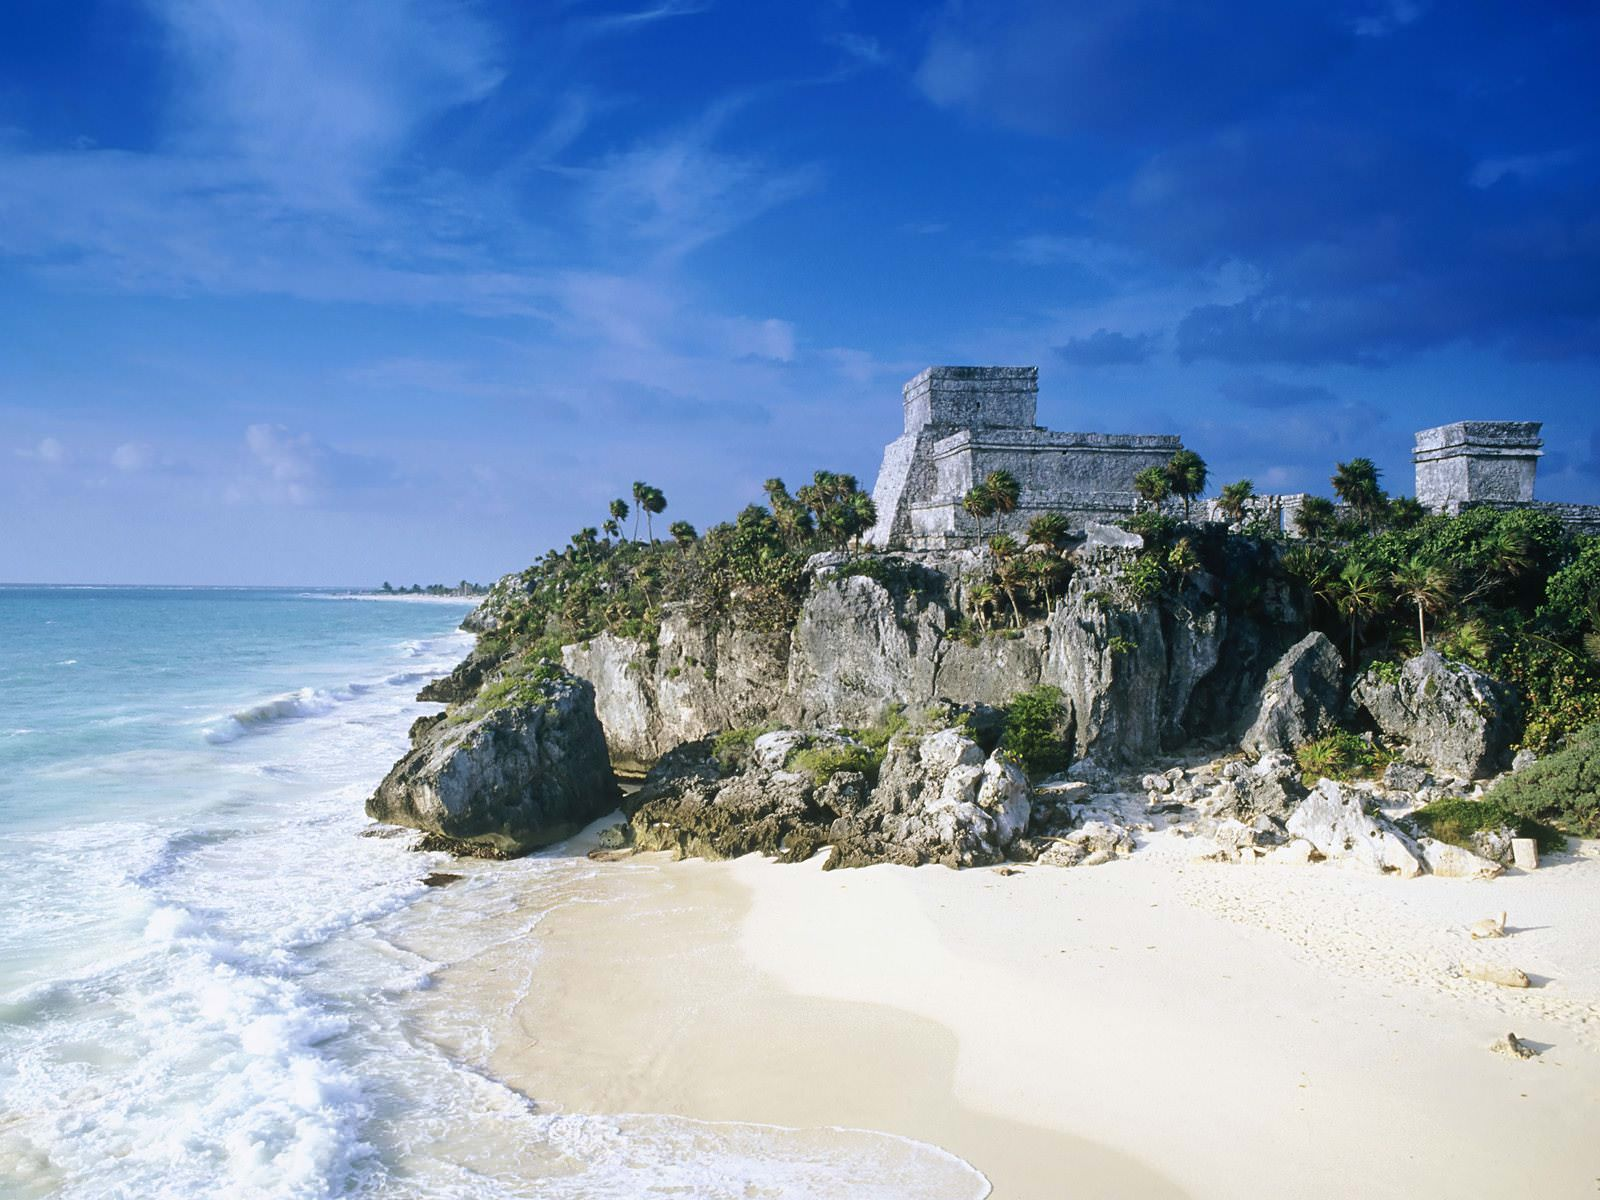 mayan_ruins_mexico_beach-normal